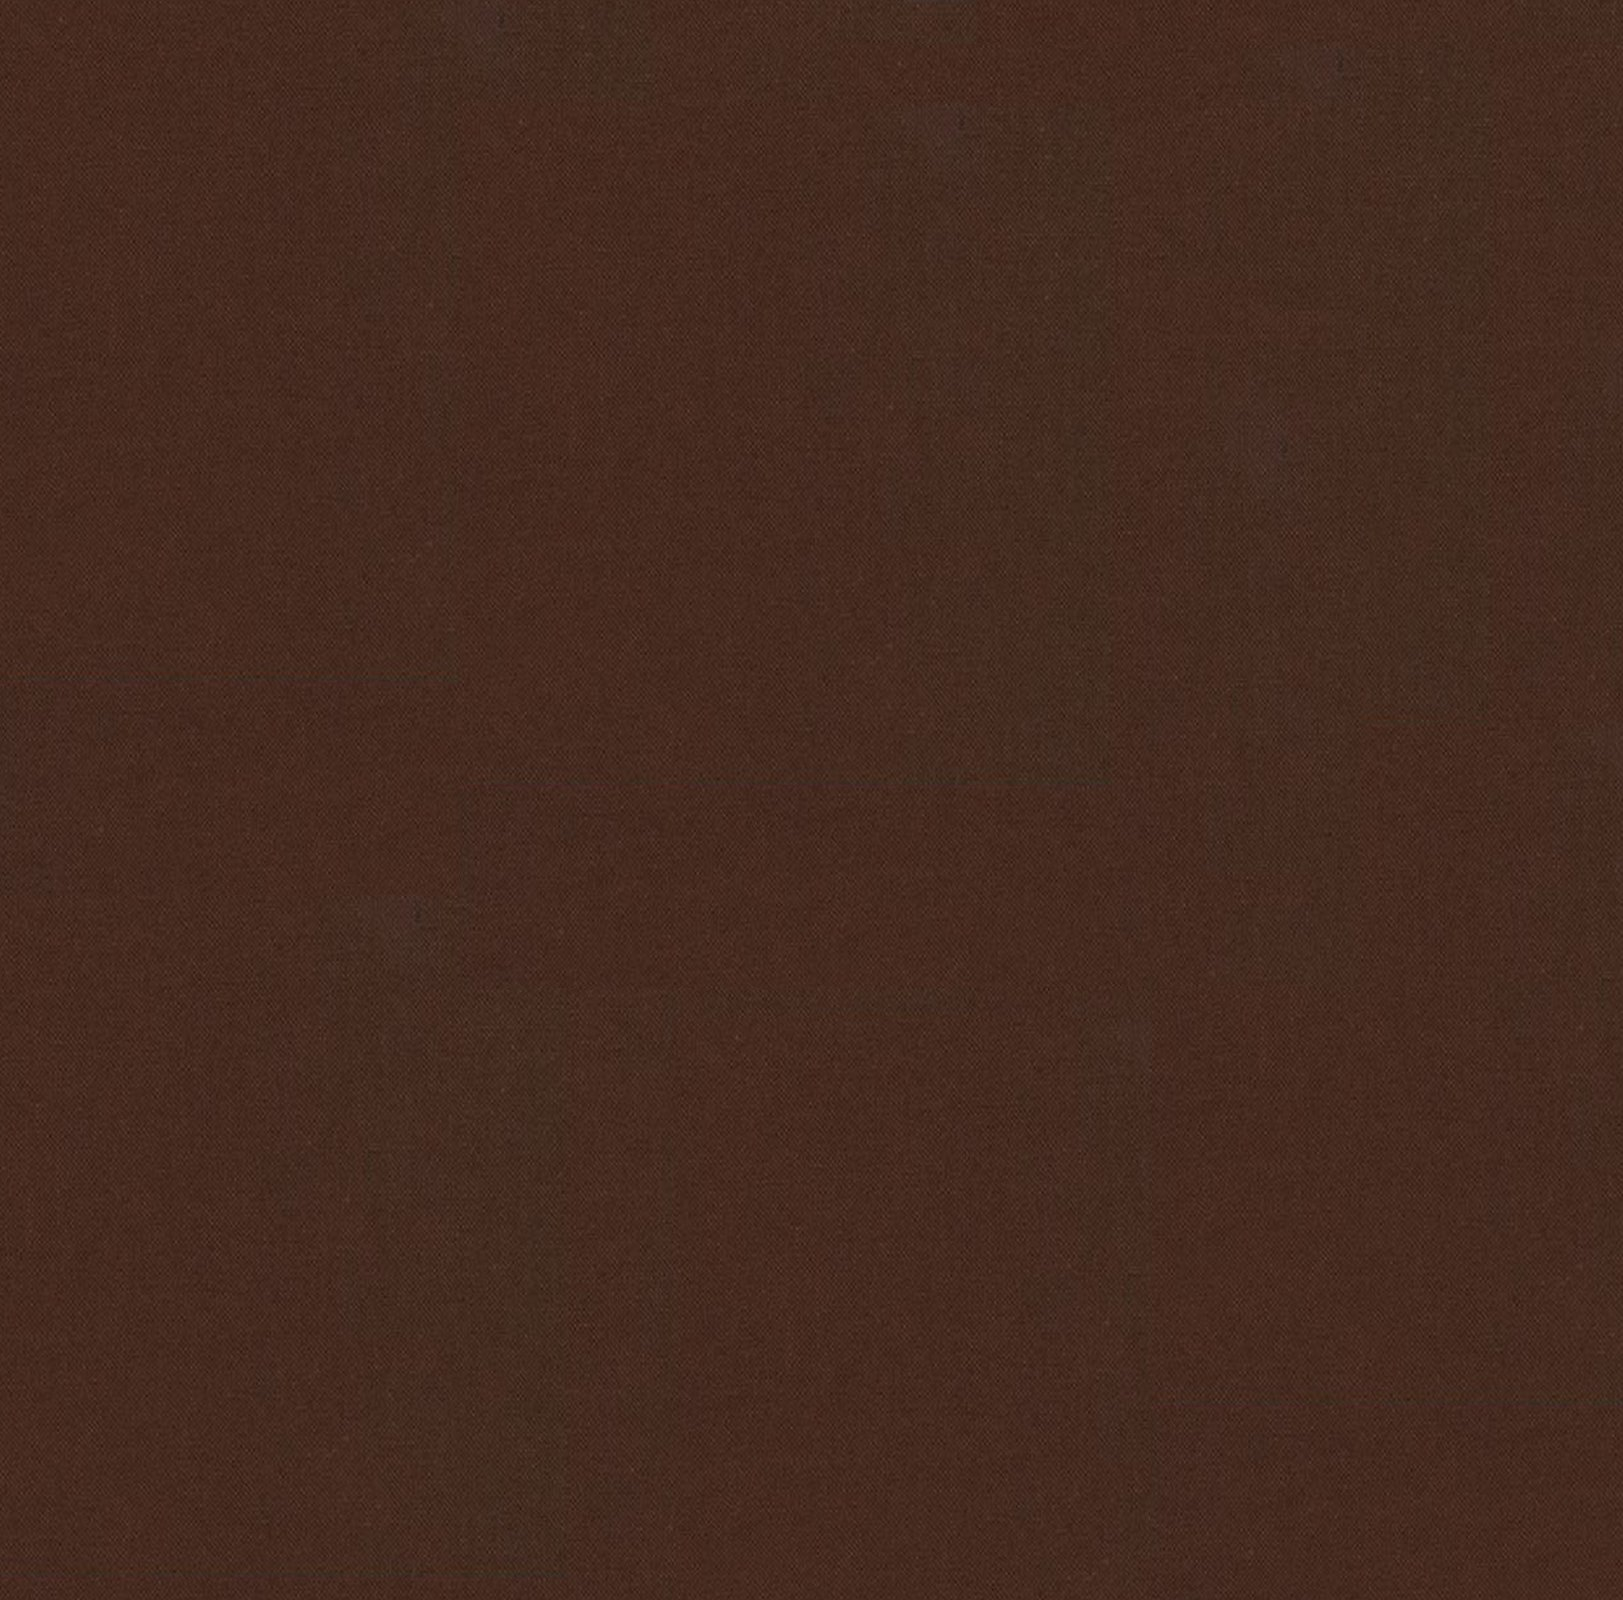 EOB - 1 yard 7 - Cotton Couture - Brown